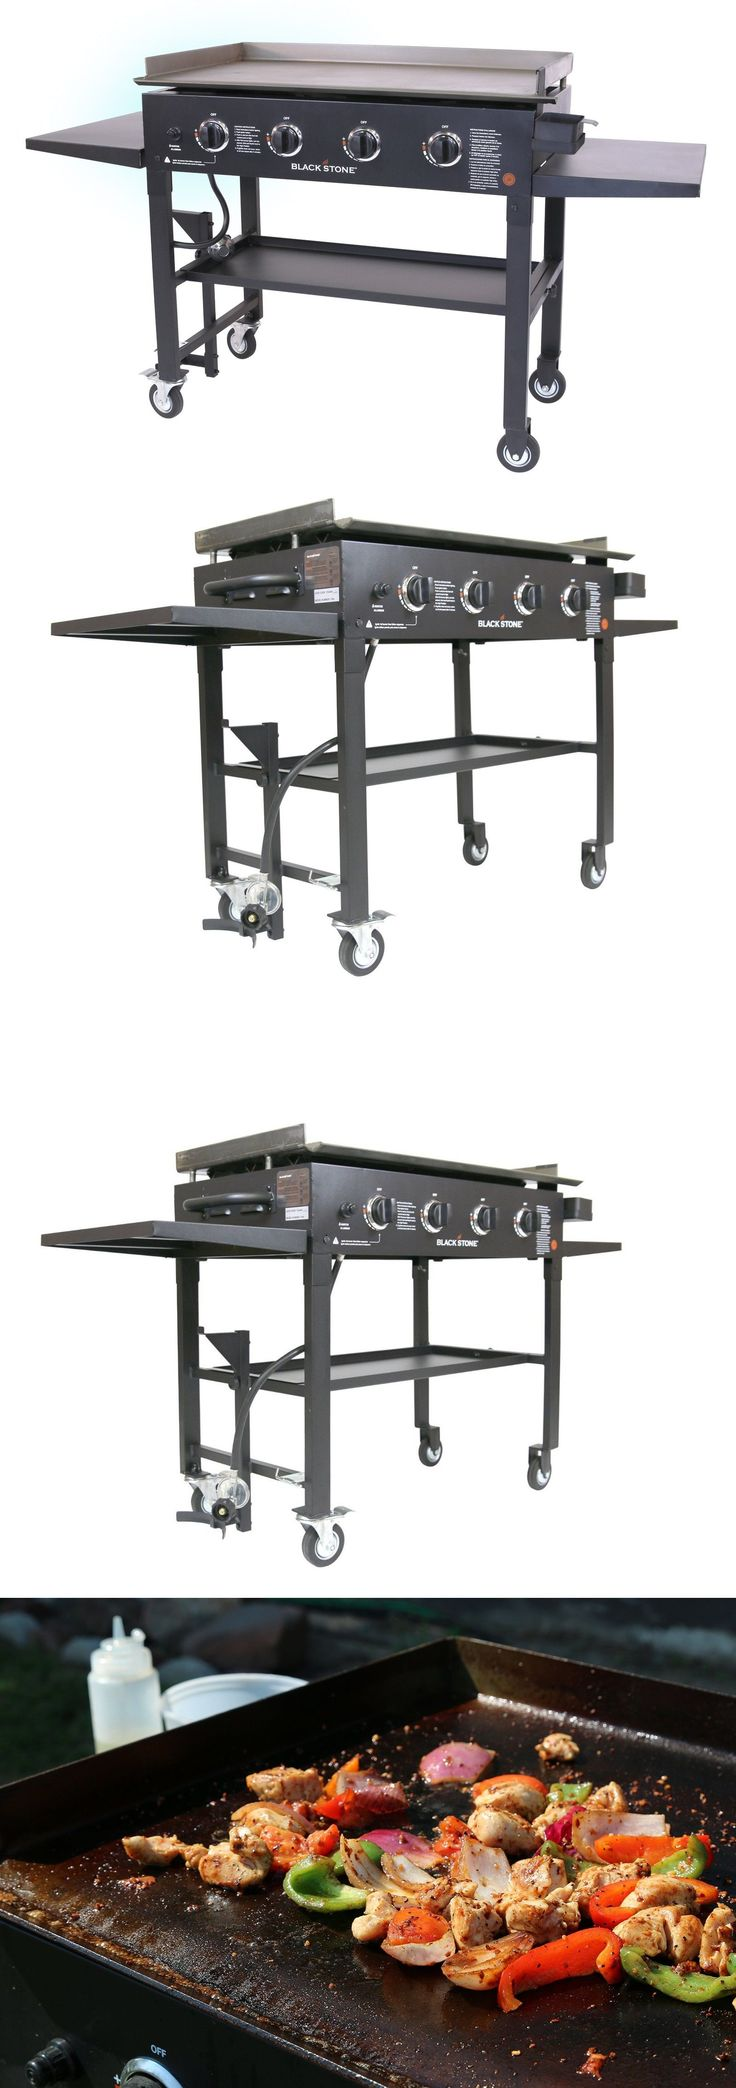 Barbecues Grills and Smokers 151621: Blackstone 36 Inch Outdoor Propane Gas Grill Griddle Cooking Station - New Item! -> BUY IT NOW ONLY: $300.87 on eBay!